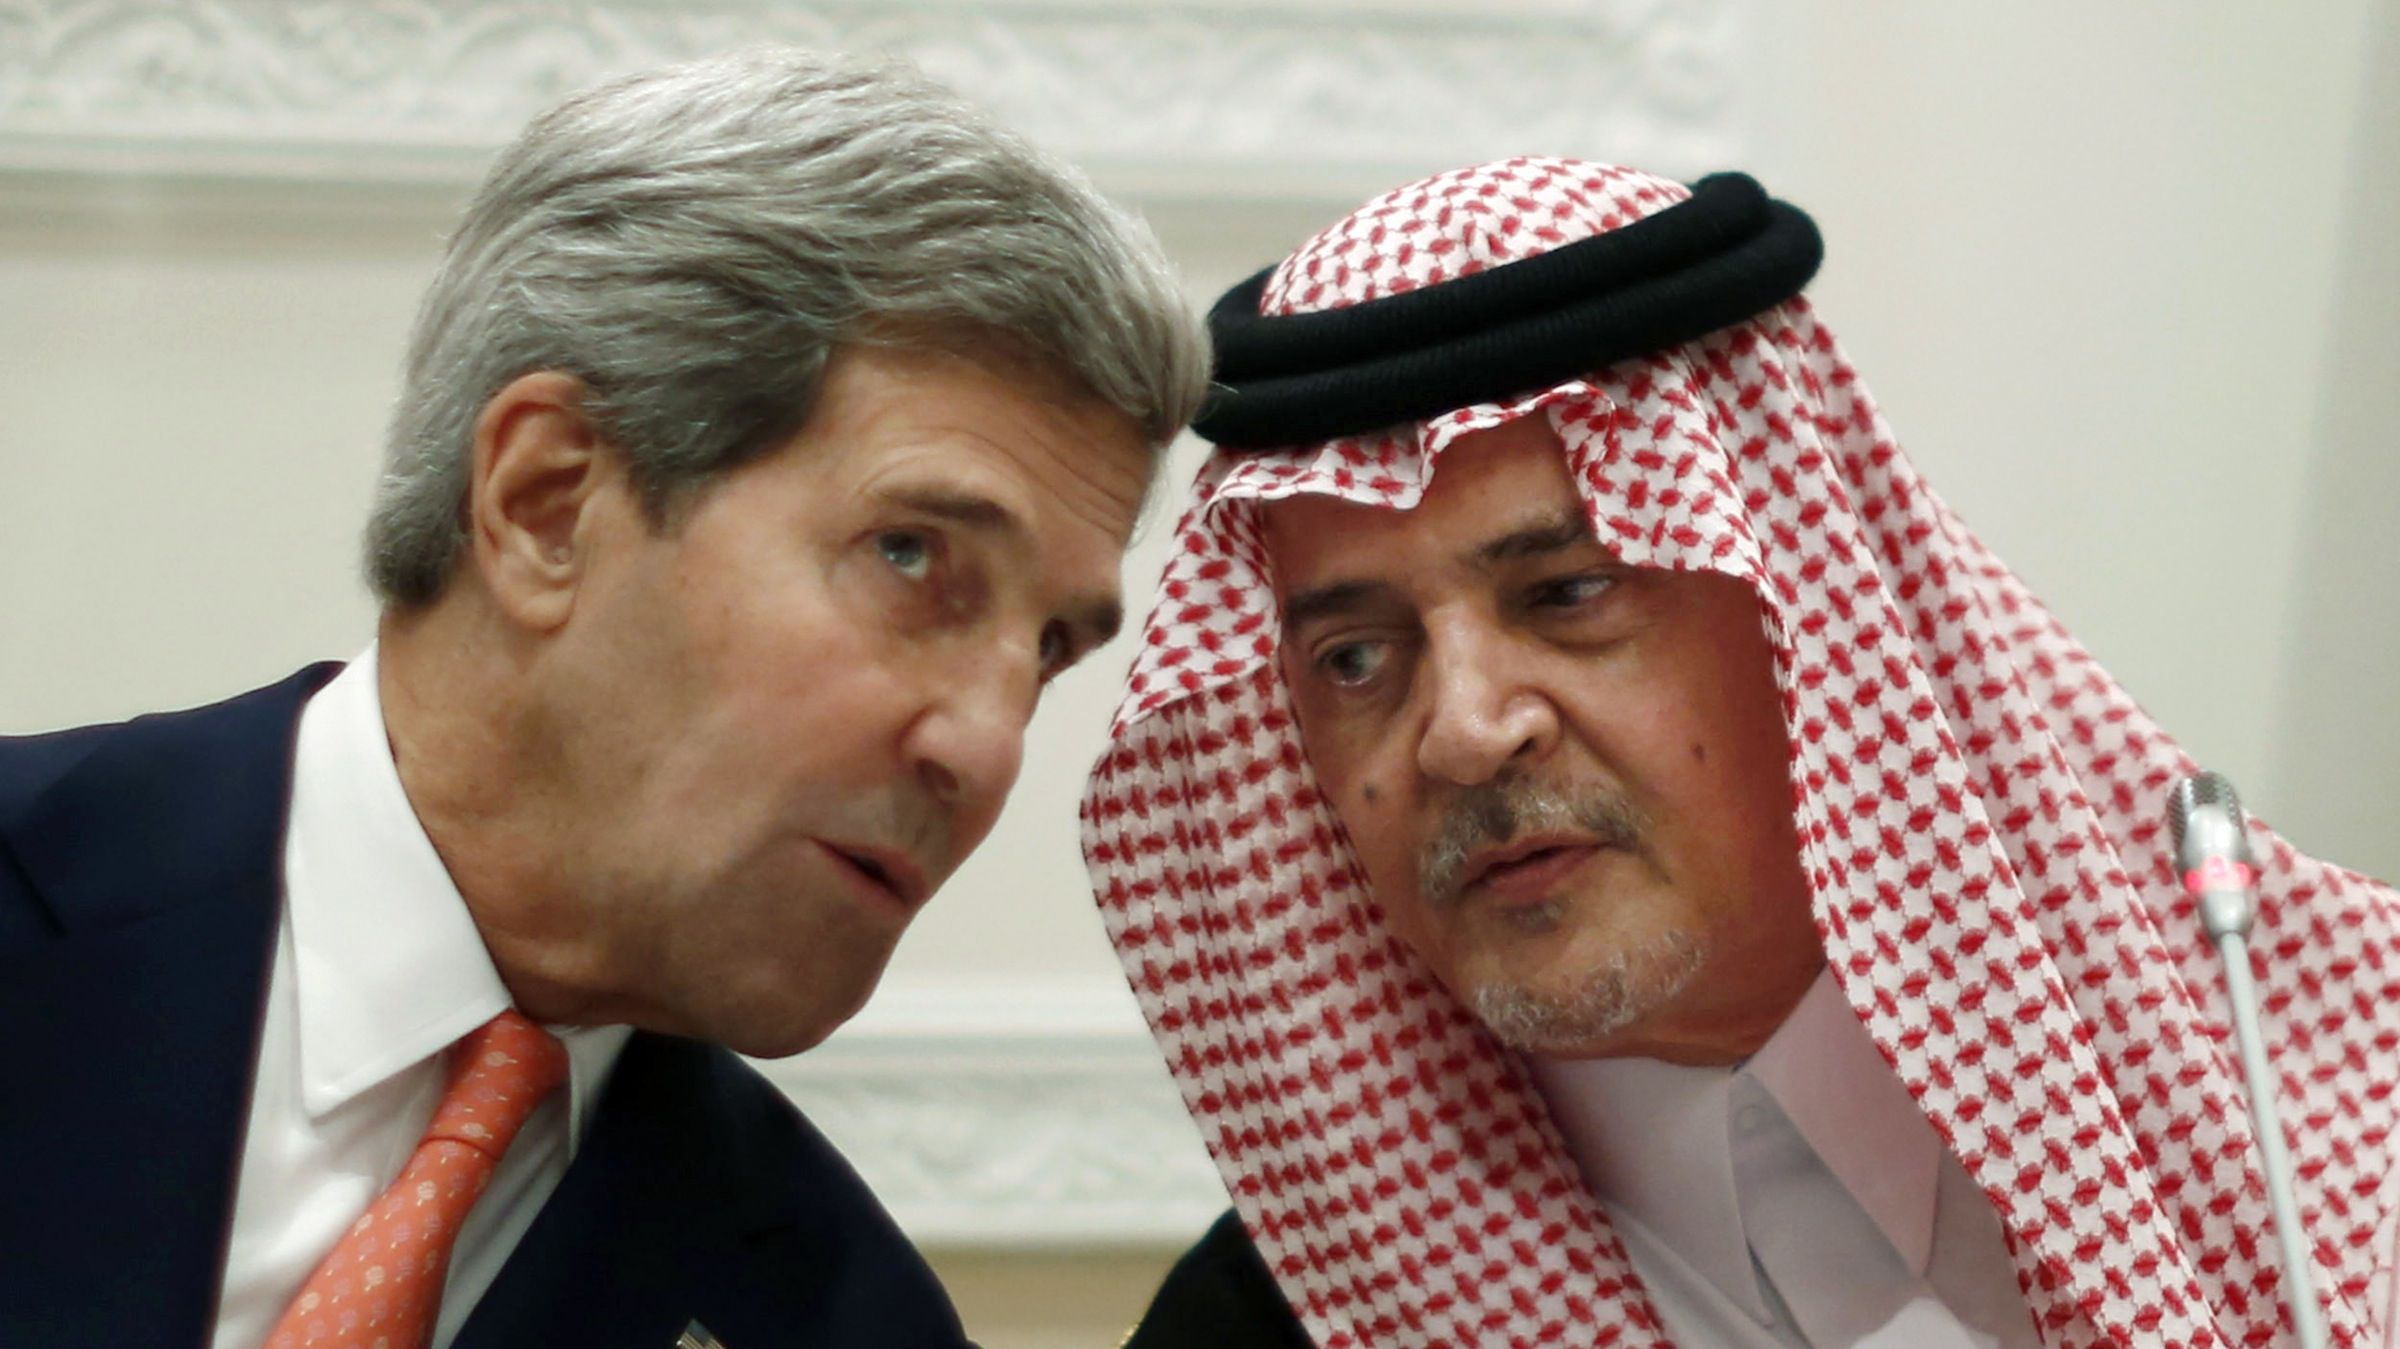 "U.S. Secretary of State John Kerry, left, speaks with Saudi Arabia's Foreign Minister Prince Saud al-Faisal, in Riyadh, Monday, Nov. 4, 2013. Al-Faisal assured Kerry Monday there is no problem with the United States, saying ""our two friendly countries"" are busy dealing with troublesome issues like Syria, Iran and the Mideast peace process. ""There is no room for emotion and anger here, but rather for policies of commonsense and level-headedness,"" Faisal said at a joint news conference with Kerry.  (AP Photo/Jason Reed, Pool)"